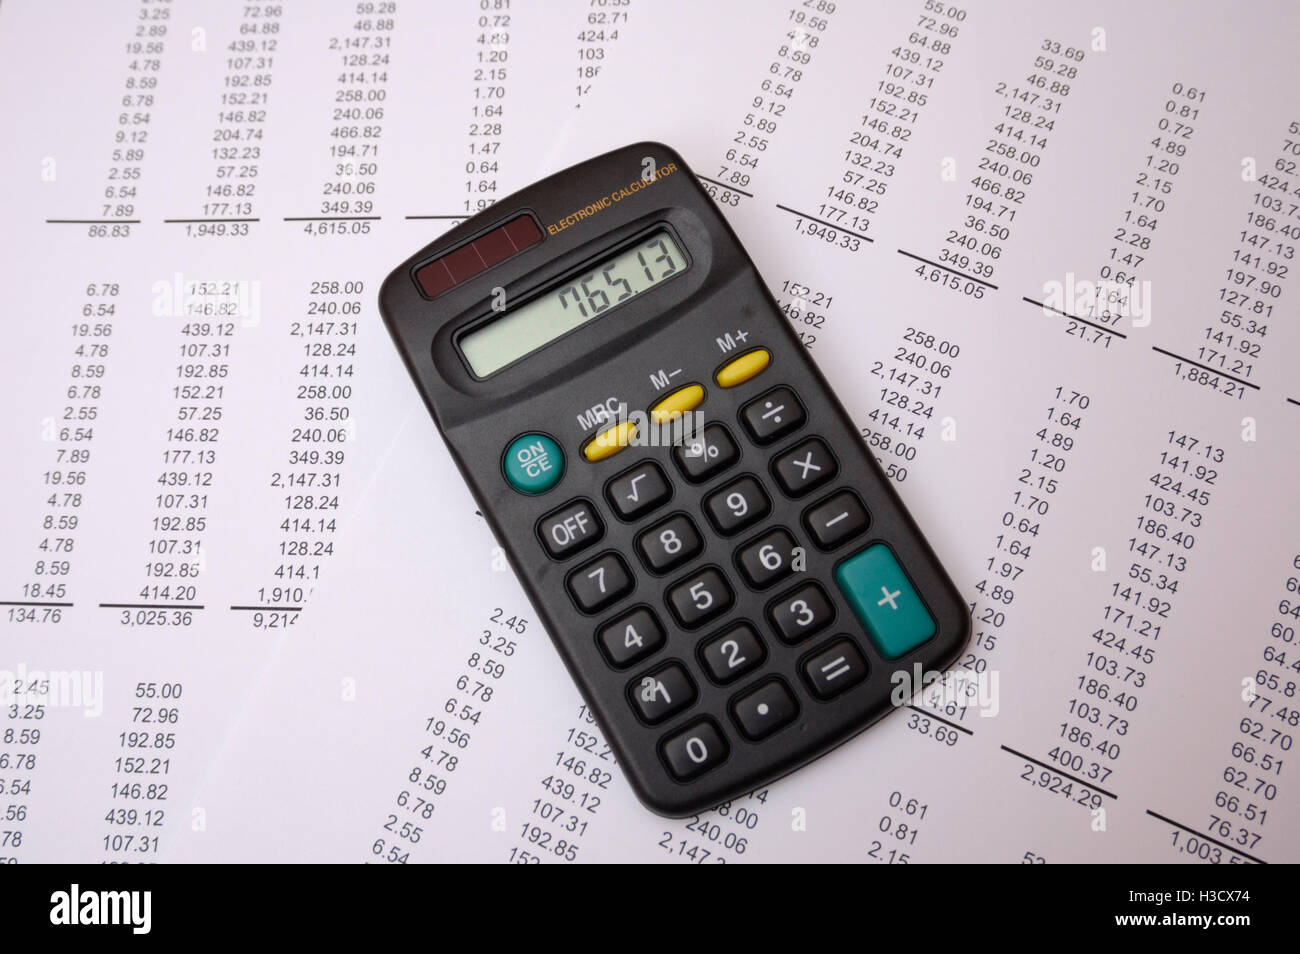 Calculator on Table of Figures Stock Photo